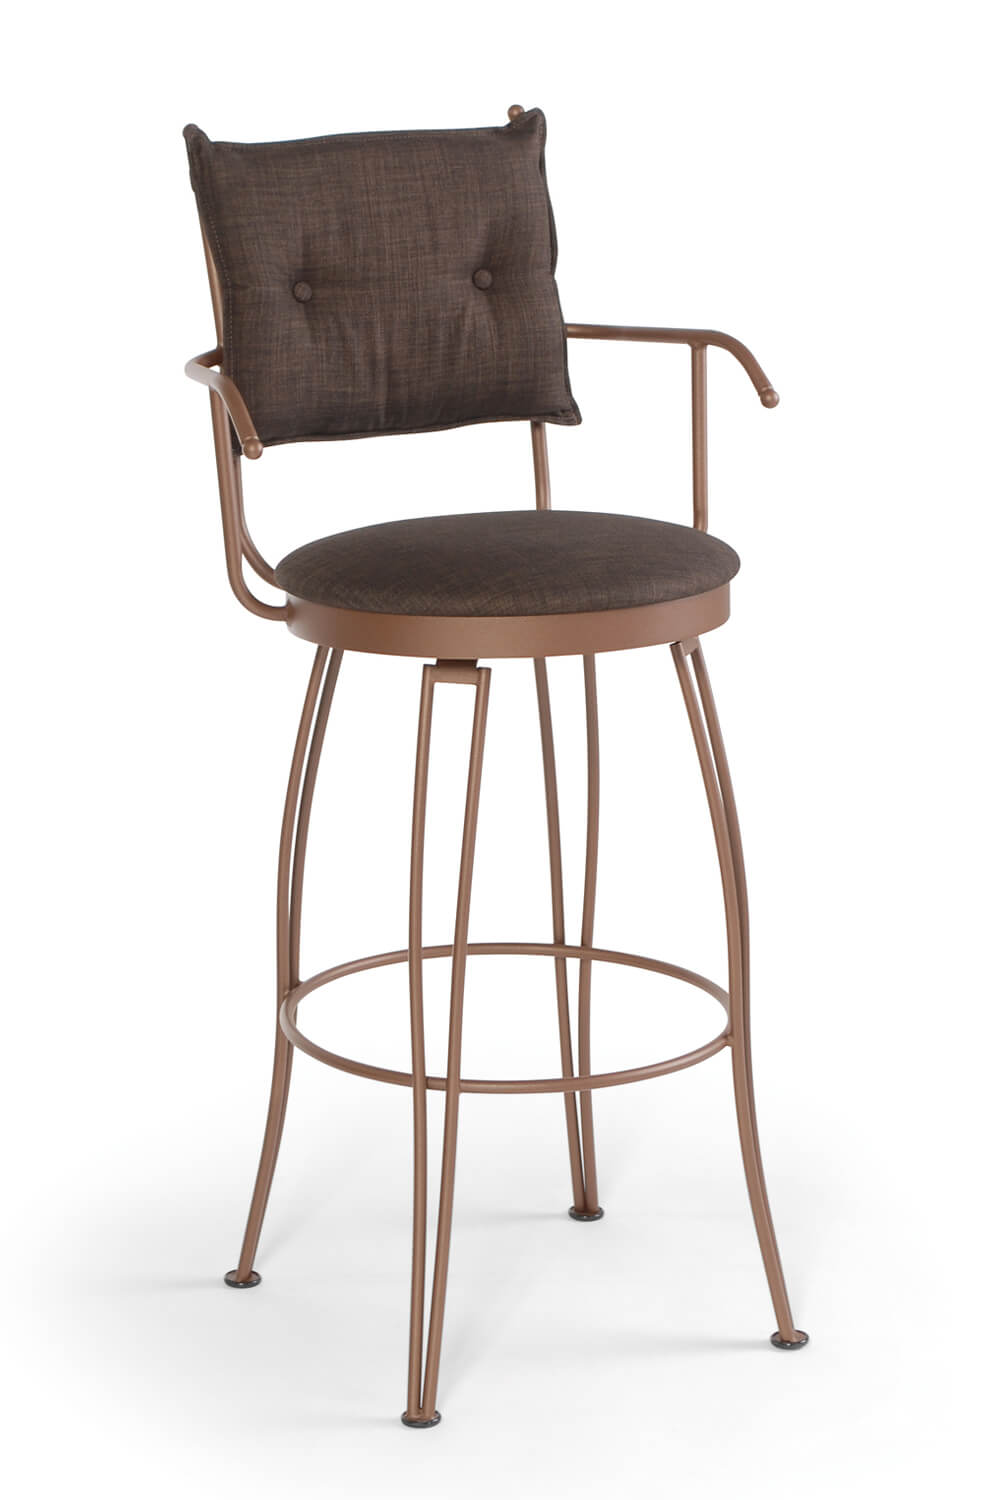 Superb Bill 2 Swivel Stool Caraccident5 Cool Chair Designs And Ideas Caraccident5Info